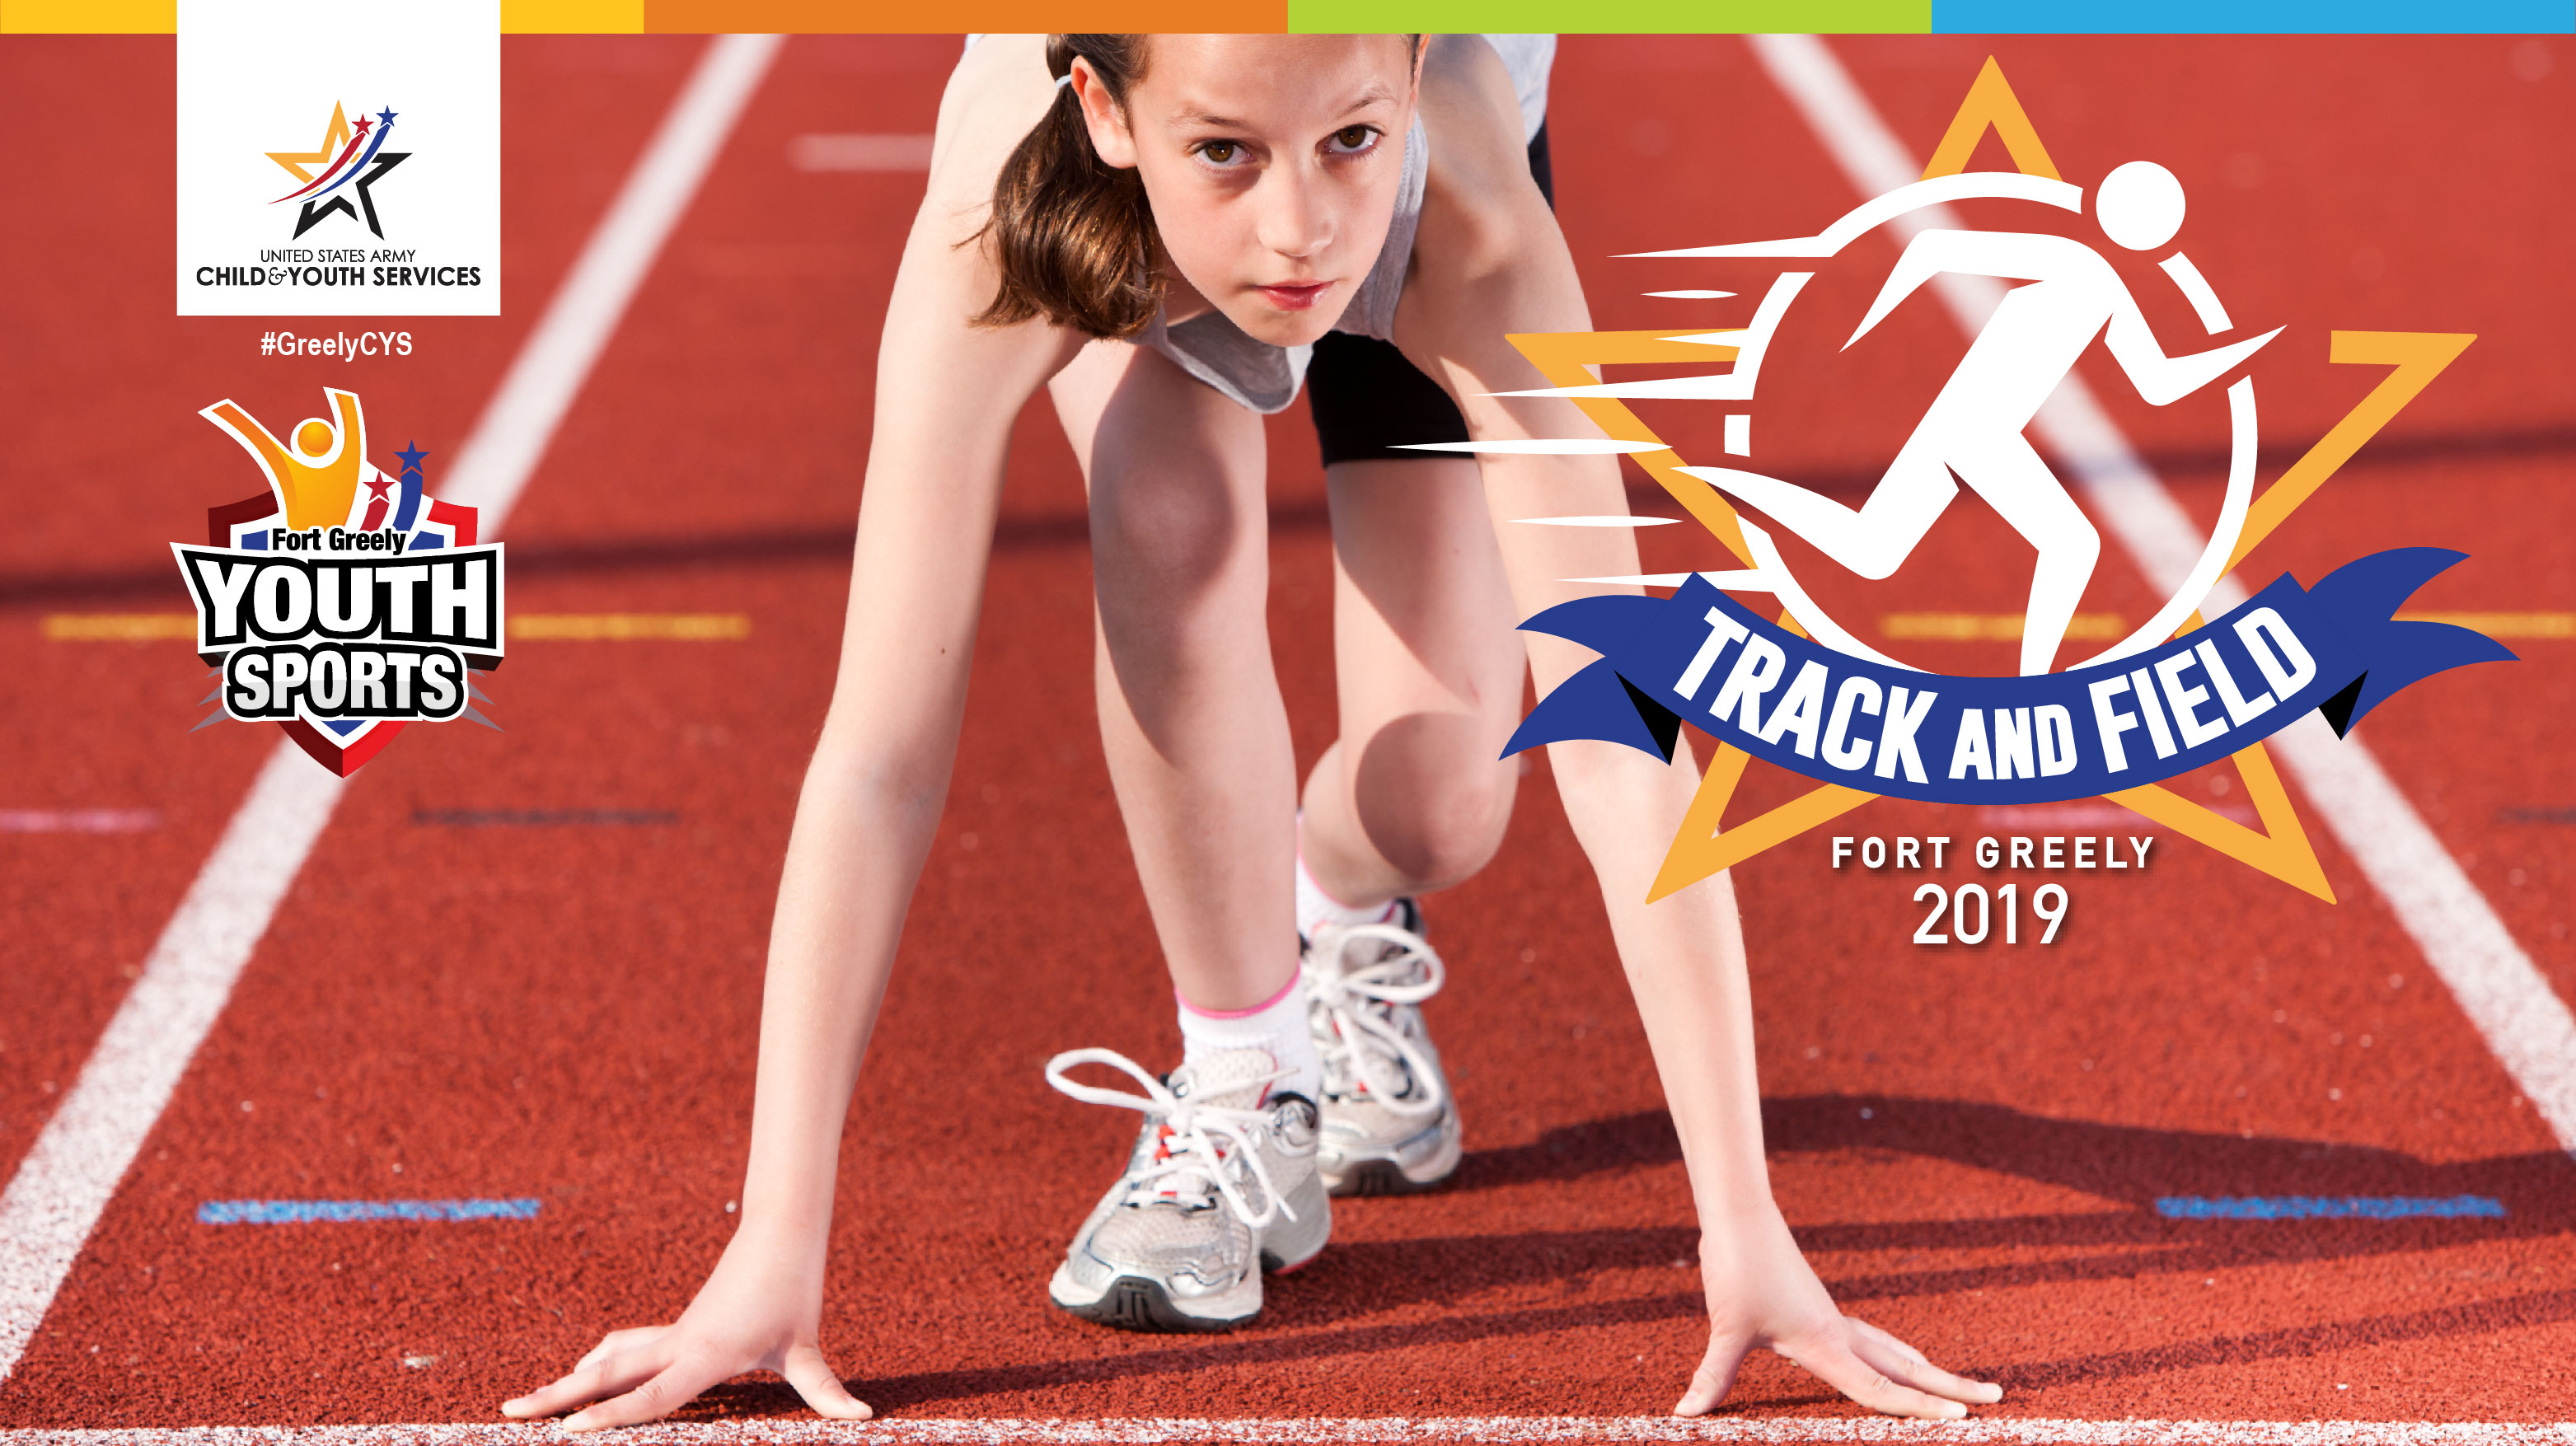 Youth Sports: Track & Field